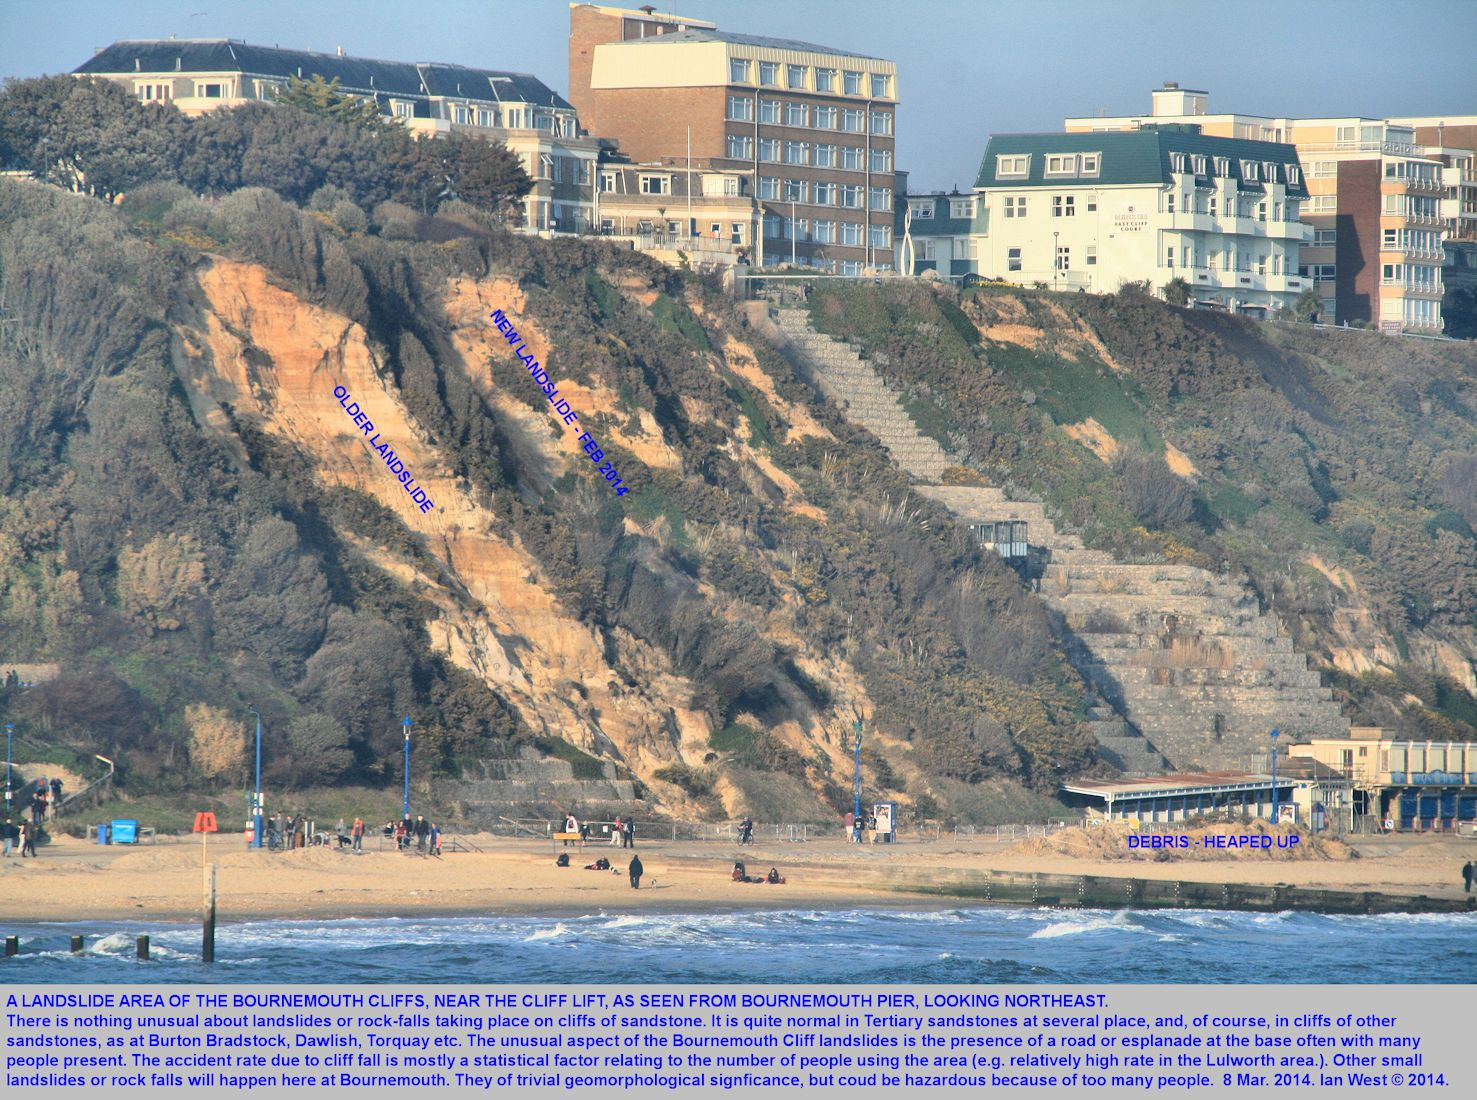 Two landslide sites in the Tertiary sandstone cliffs of Bournemouth, Dorset, as seen to the northeast of  Bournemouth Pier, photograph 8th March 2014